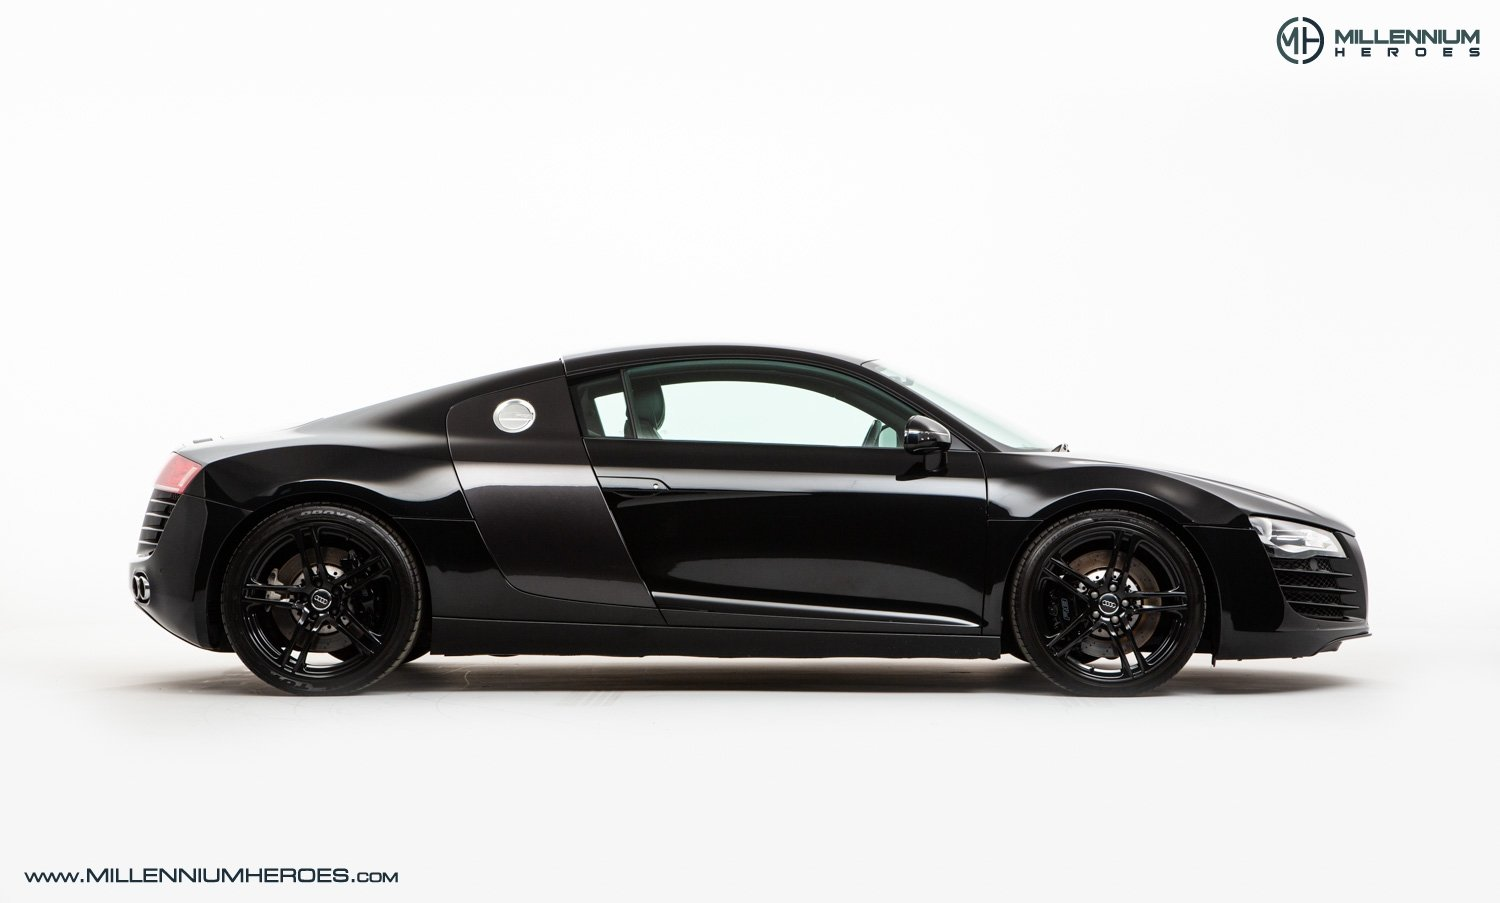 2008 AUDI R8 QUATTRO // 6 SPEED MANUAL // FULL AUDI SERVICE HISTO For Sale (picture 4 of 19)